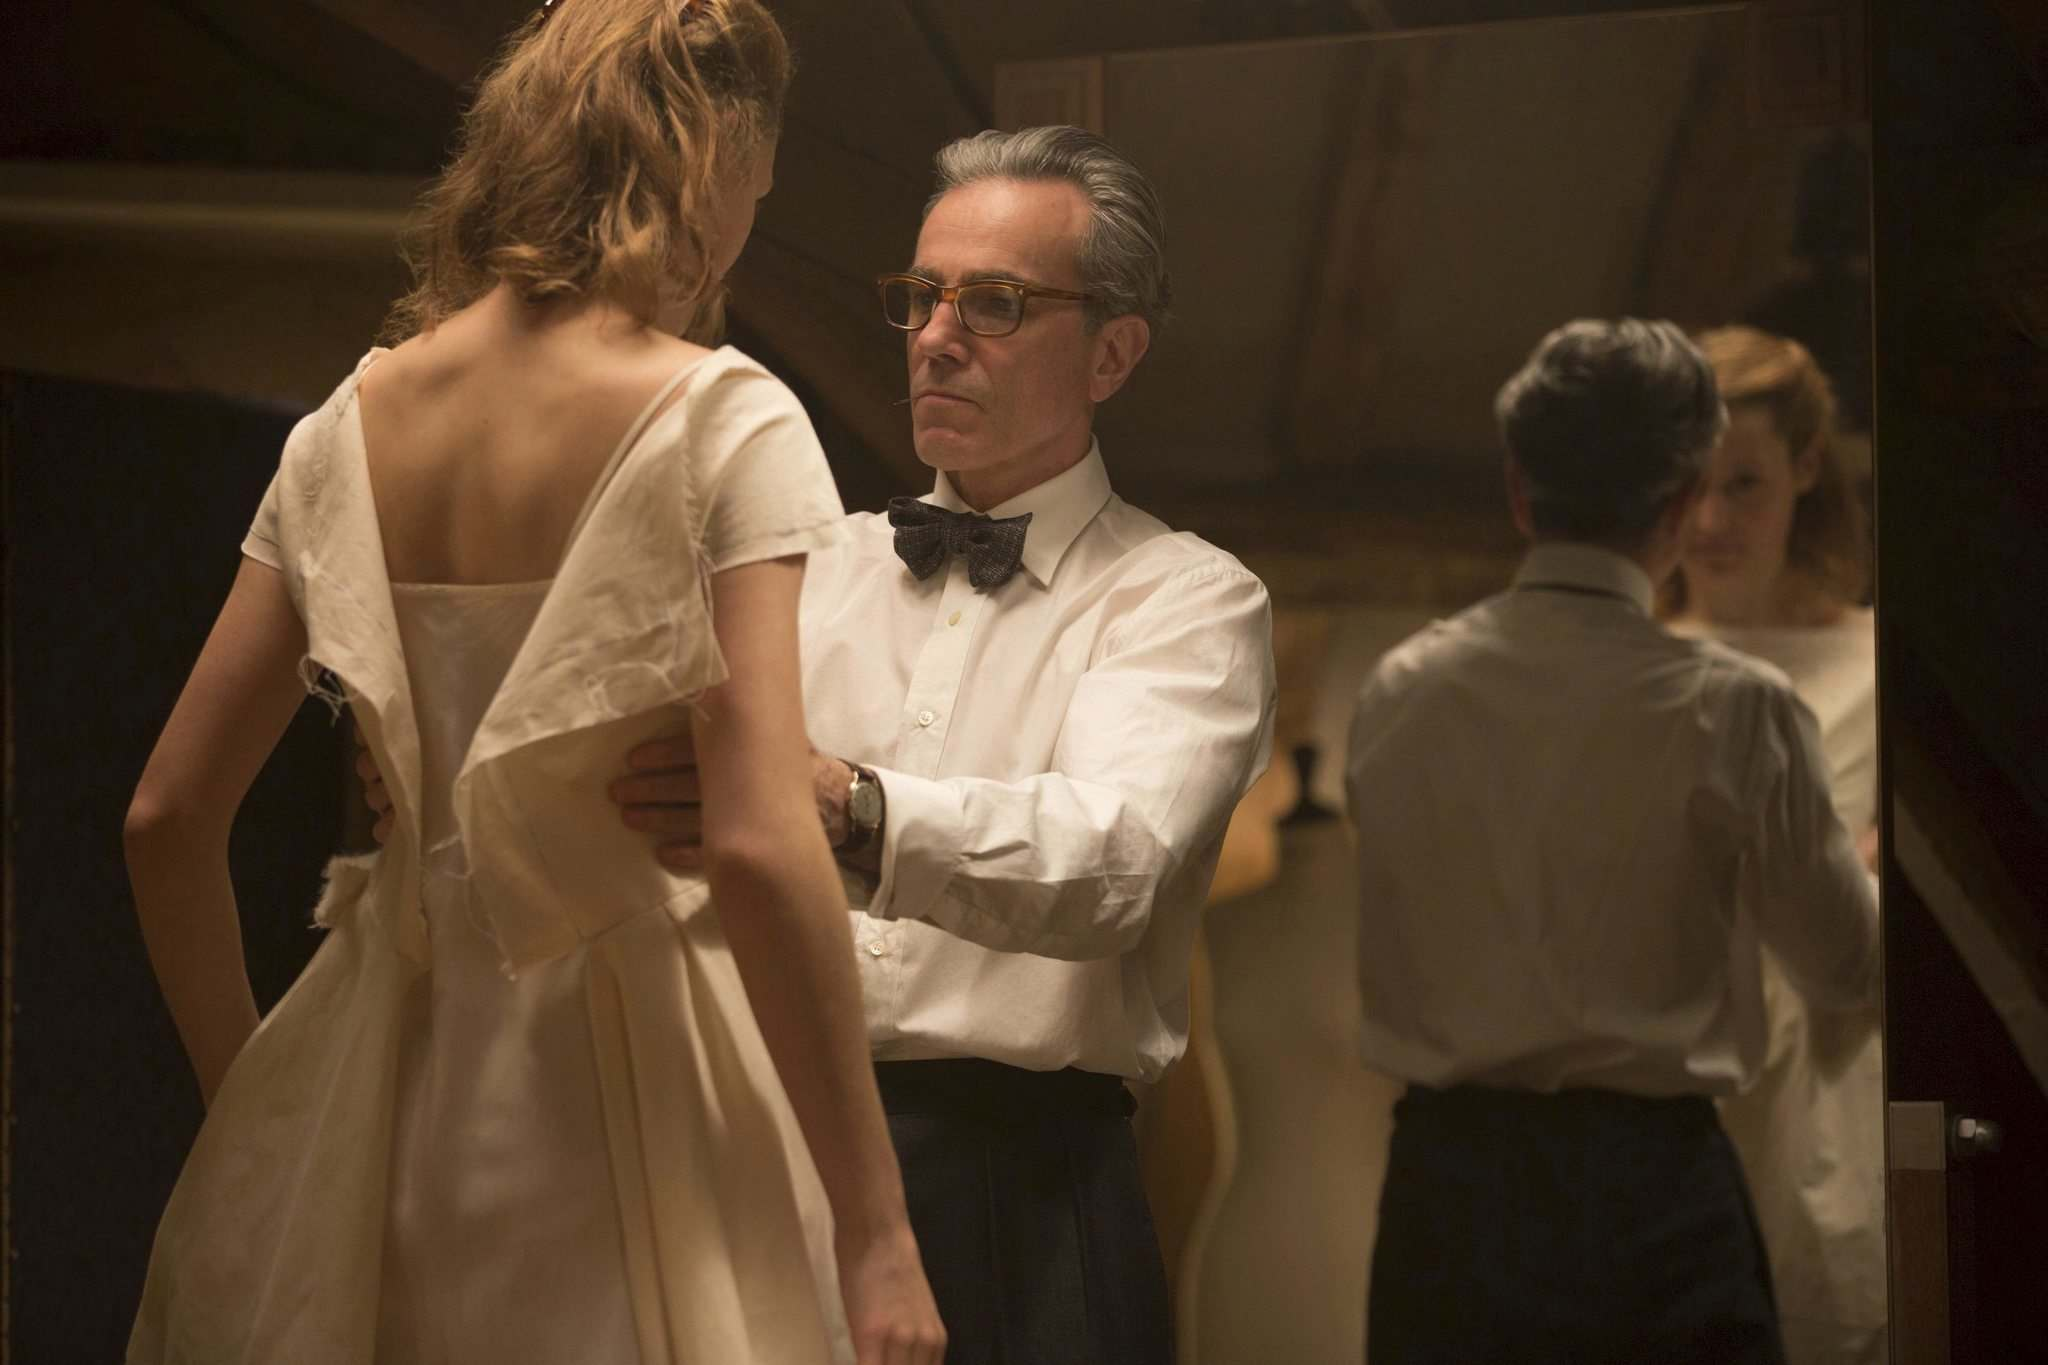 Vicky Krieps, left, and Daniel Day-Lewis in  Phantom Thread. (Laurie Sparham / Focus Features)